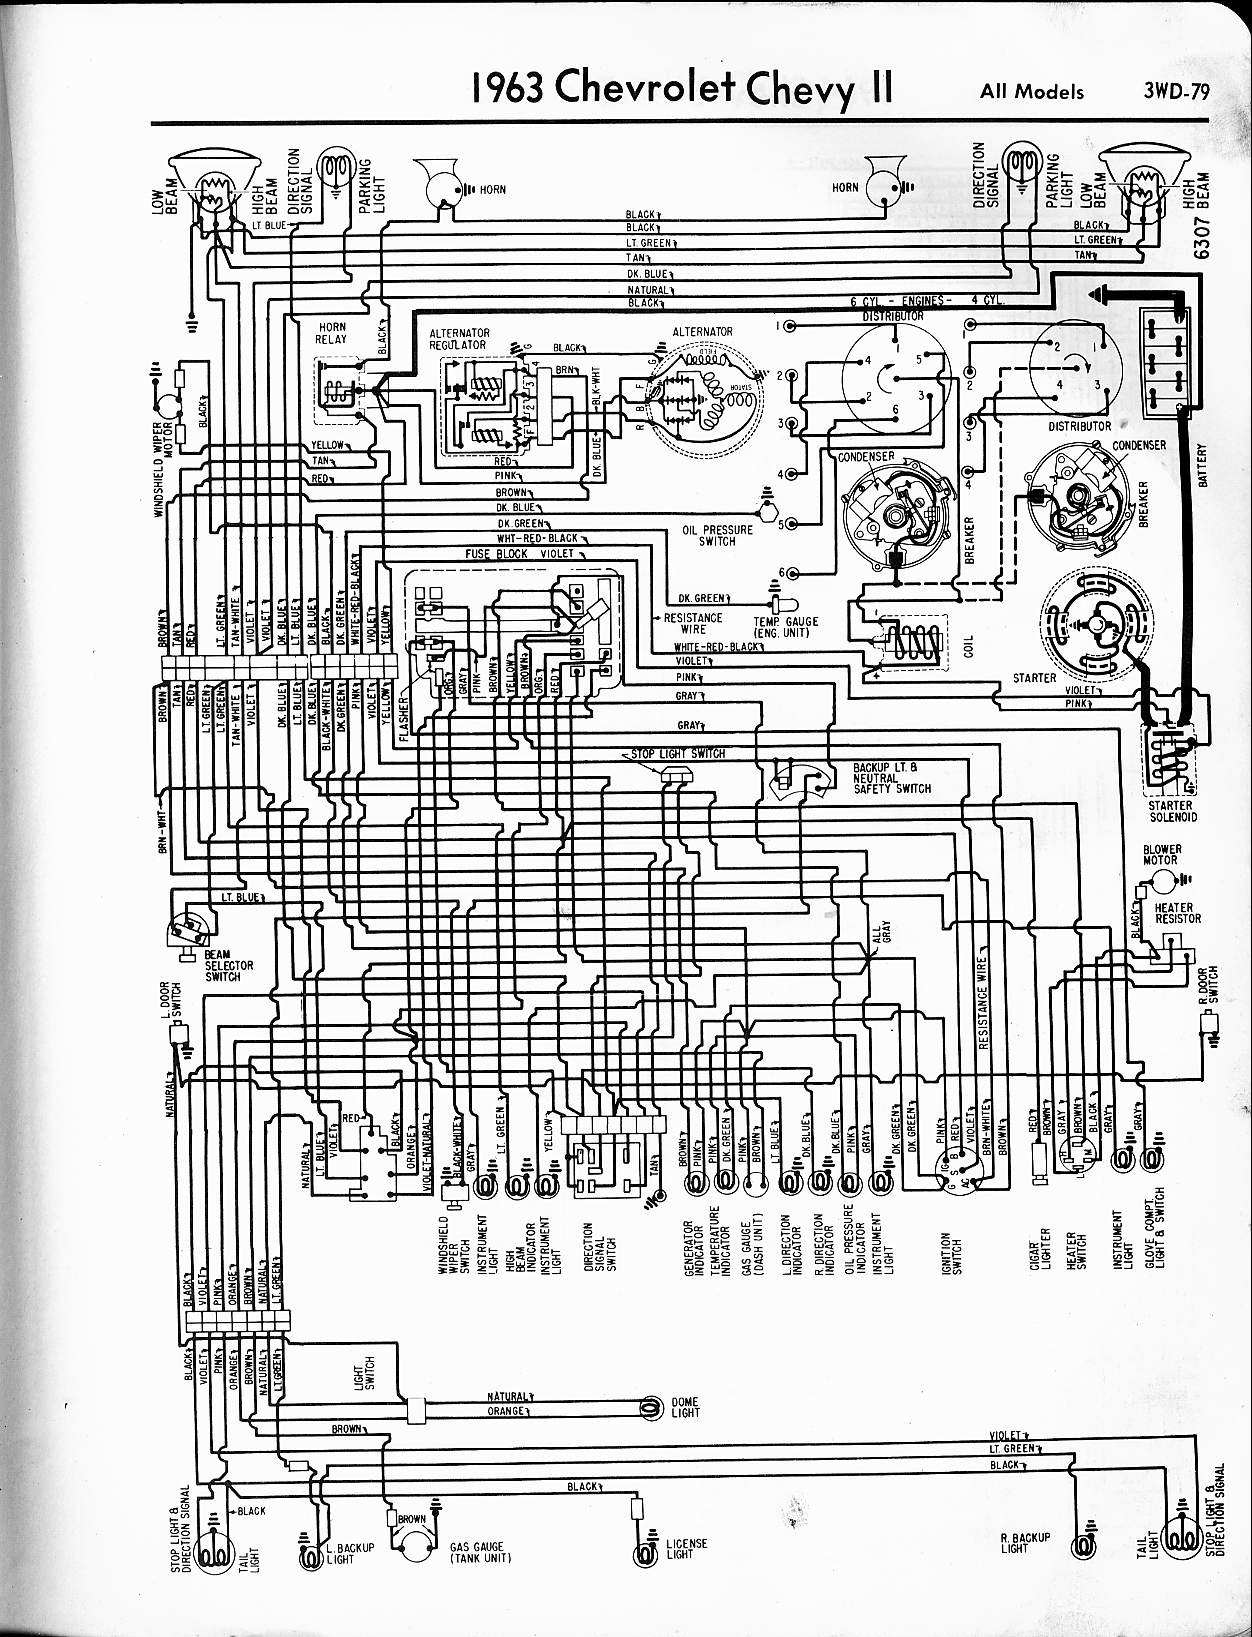 70 chevy pickup wiring diagram best wiring library rh 114 princestaash org